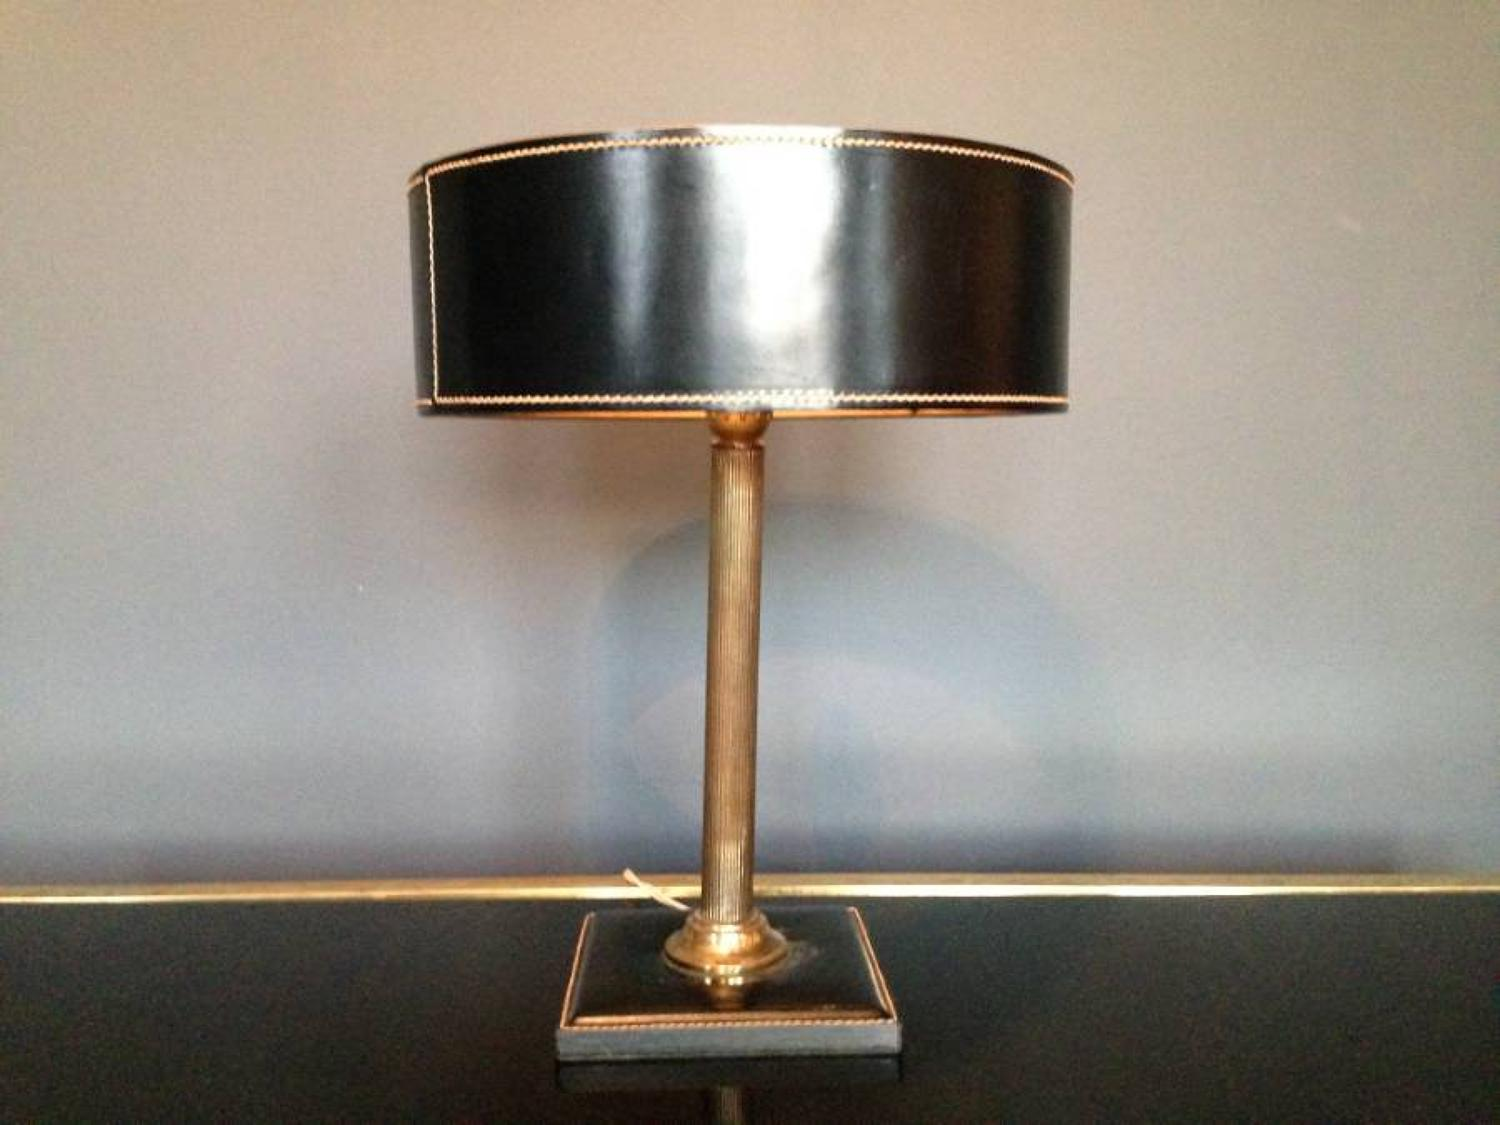 Stitched leather and brass lamp by Jacques Adnet